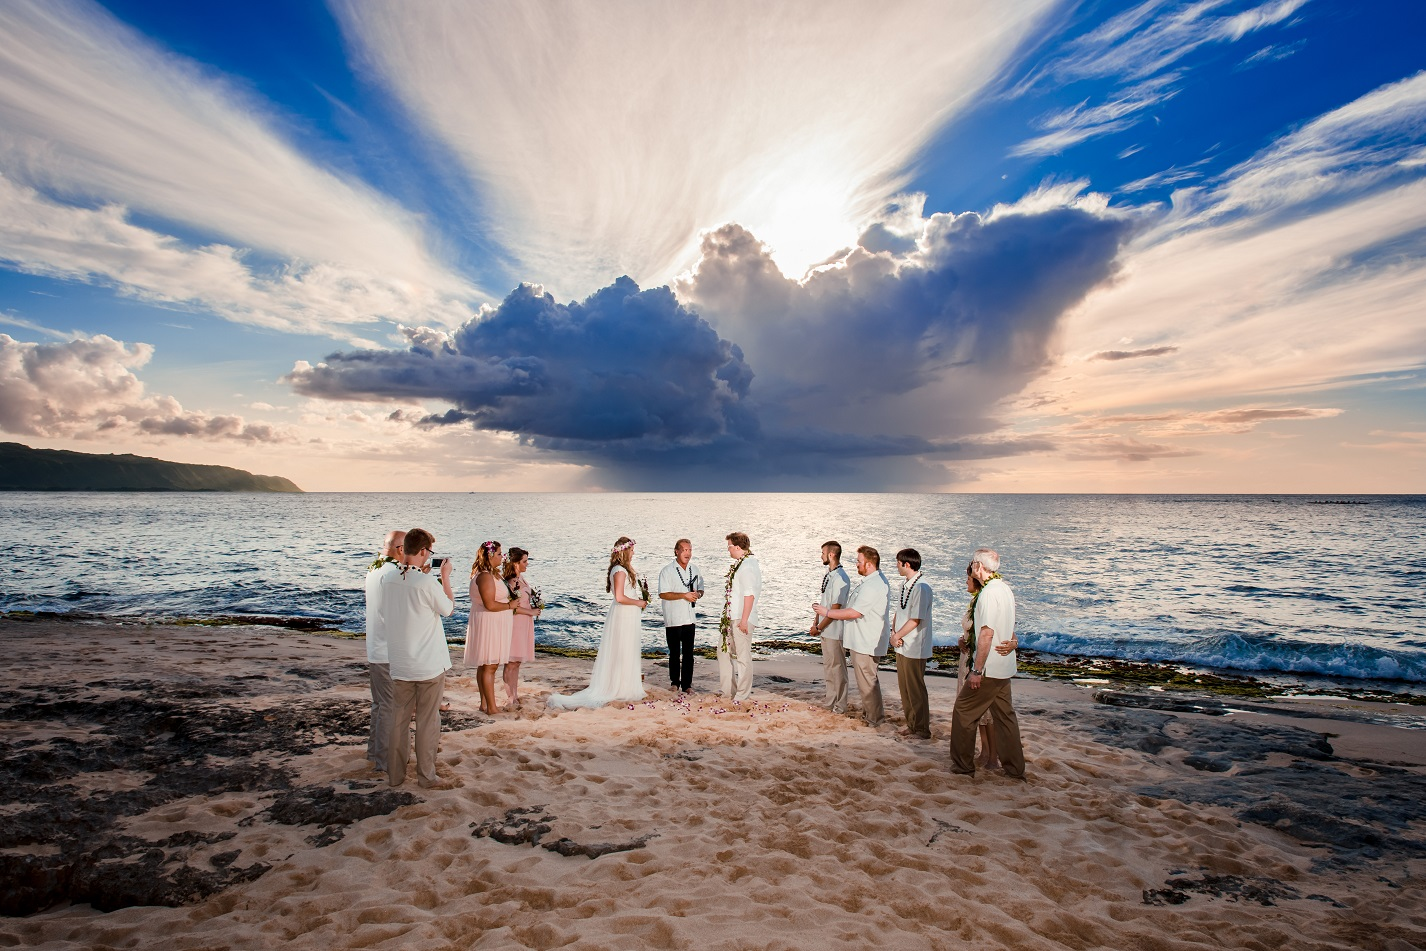 Sunset Beach Ceremony (Thank God for that cloud blocking the direct sun!)